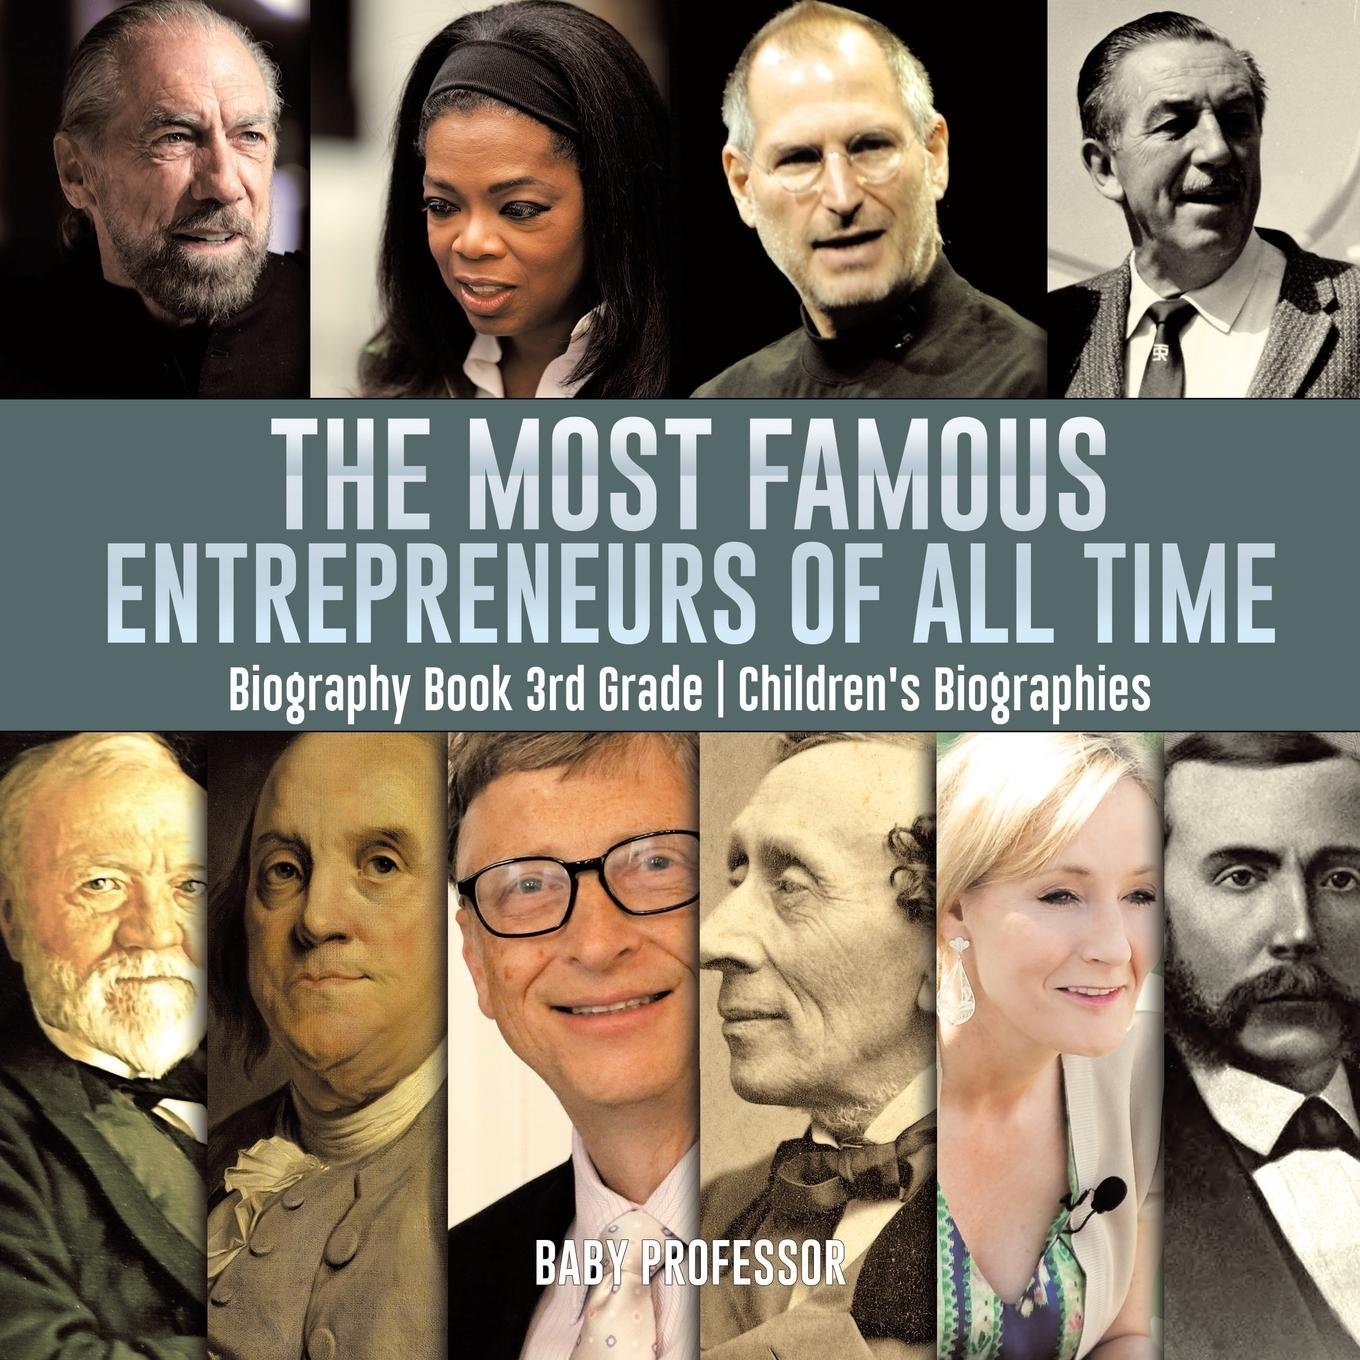 The Most Famous Entrepreneurs of All Time - Biography Book 3rd Grade  Children's Biographies pdf